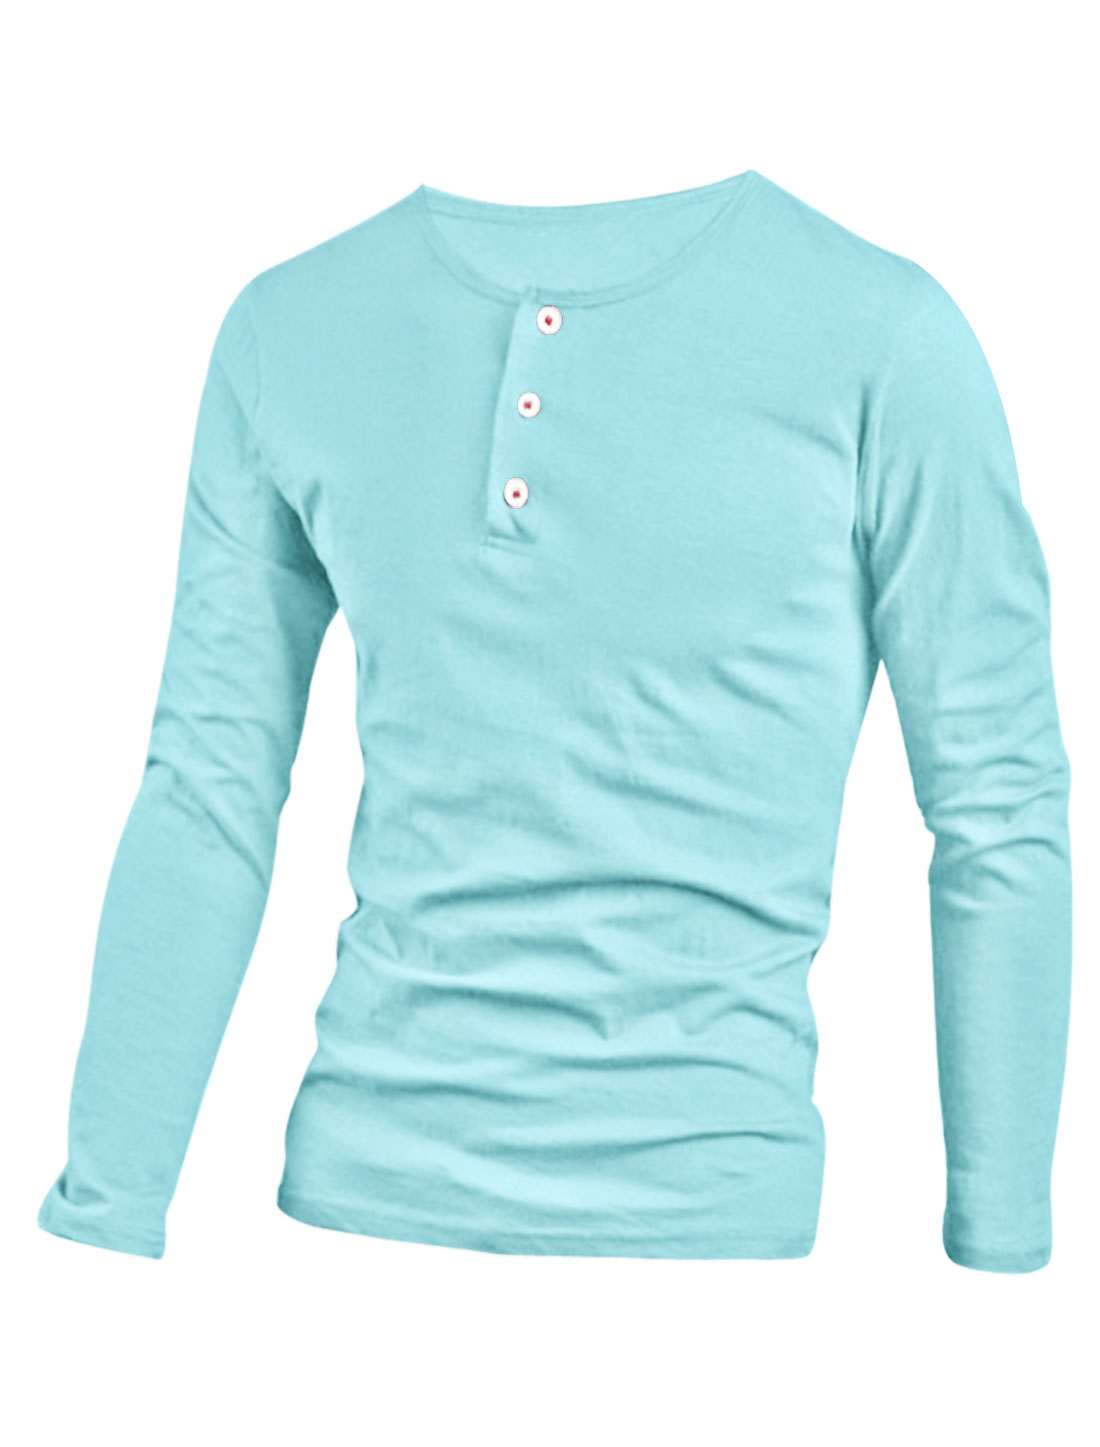 Men Casual Slim Fit Tunic Button Down Long Sleeve Henley Tee T Shirts Sky Blue M